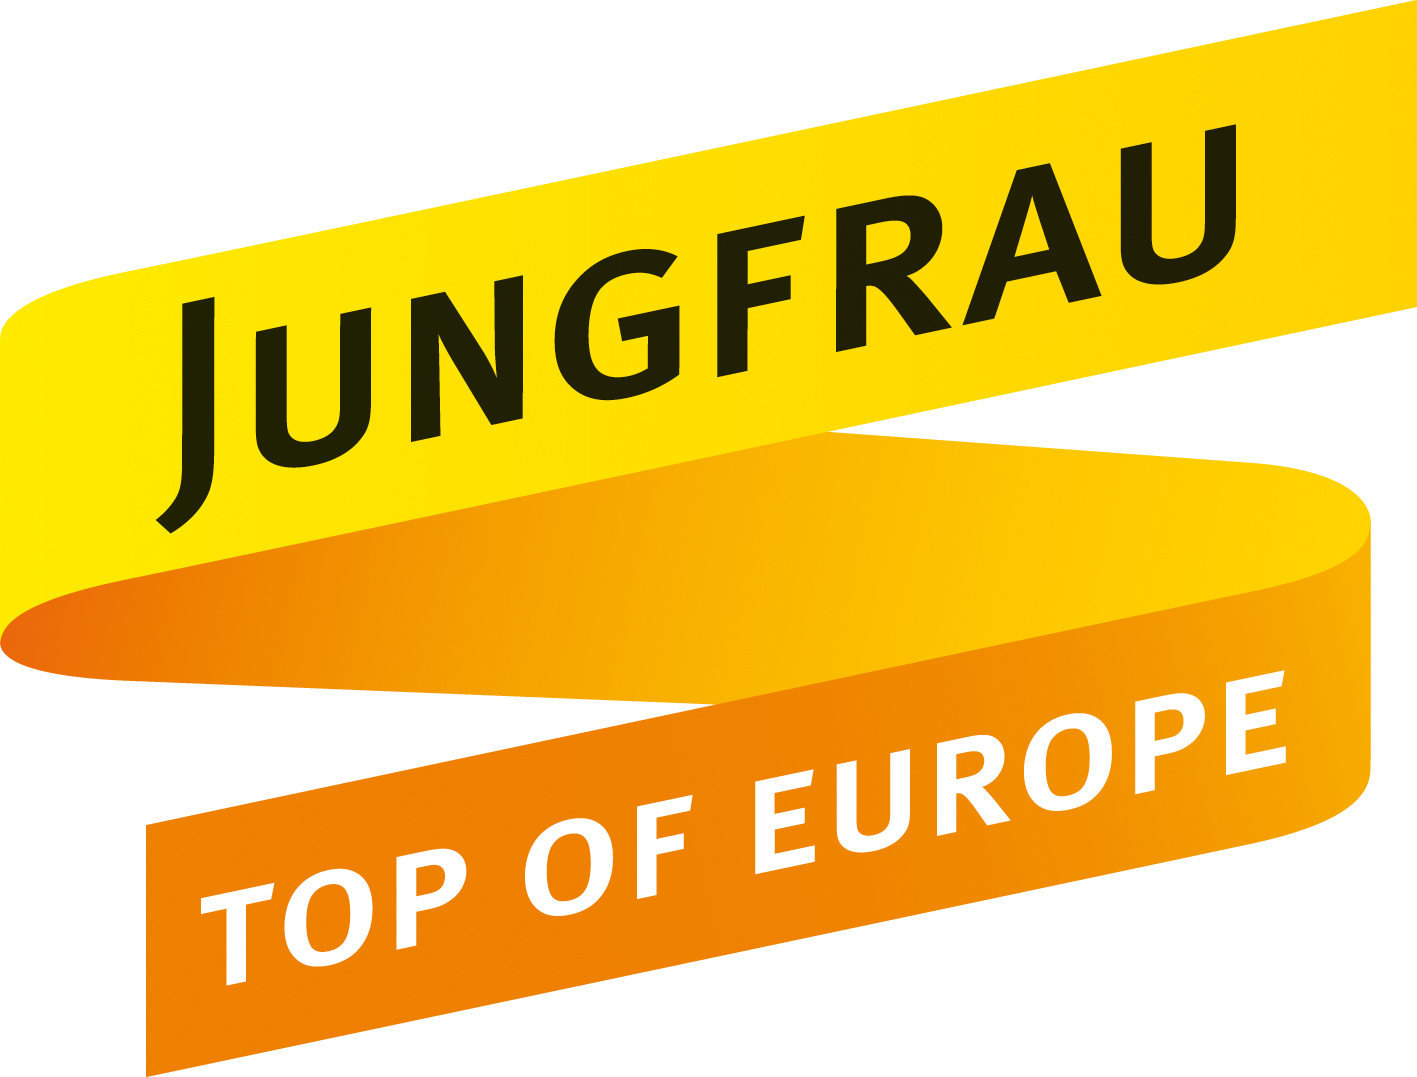 Jungfrau - Top Of Europe